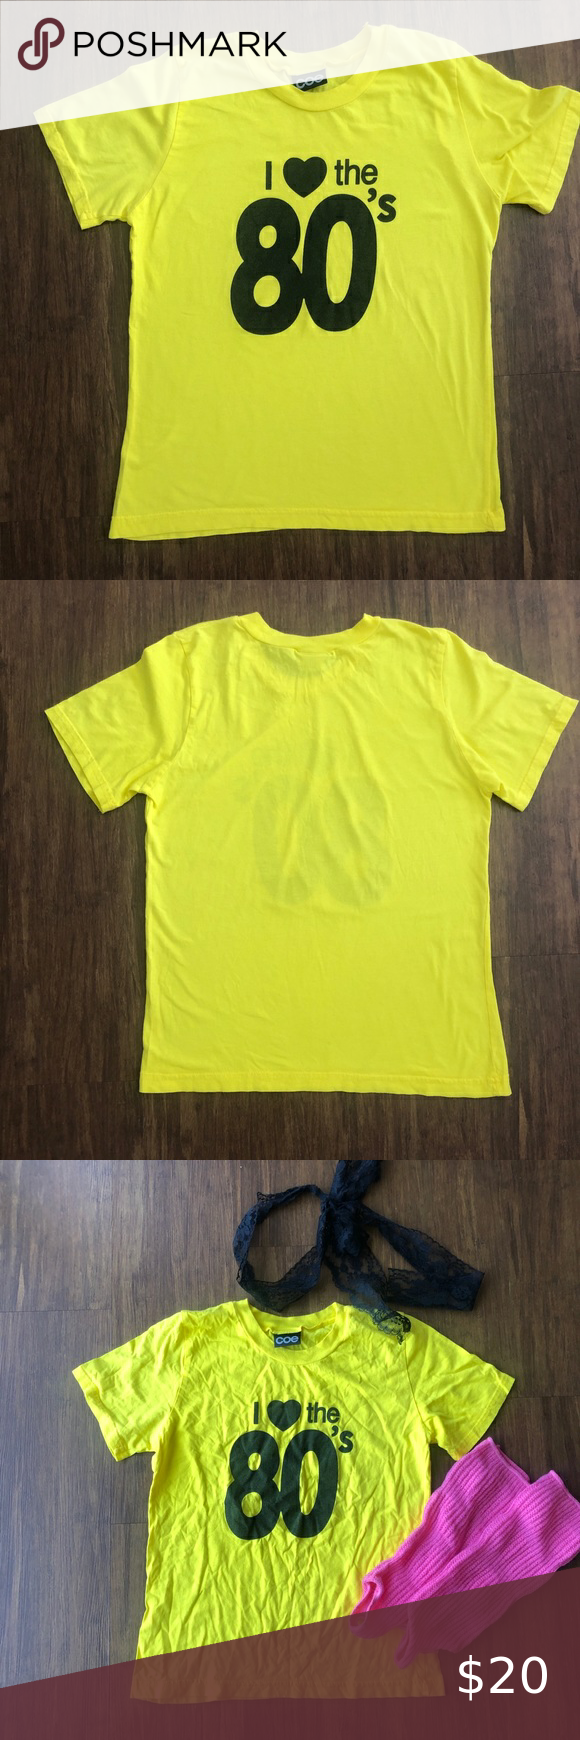 Check out this listing I just found on Poshmark: Girls Love The 80's 1980s T-Shirt Yellow XL 14-16. #shopmycloset #poshmark #shopping #style #pinitforlater #Coe #Other